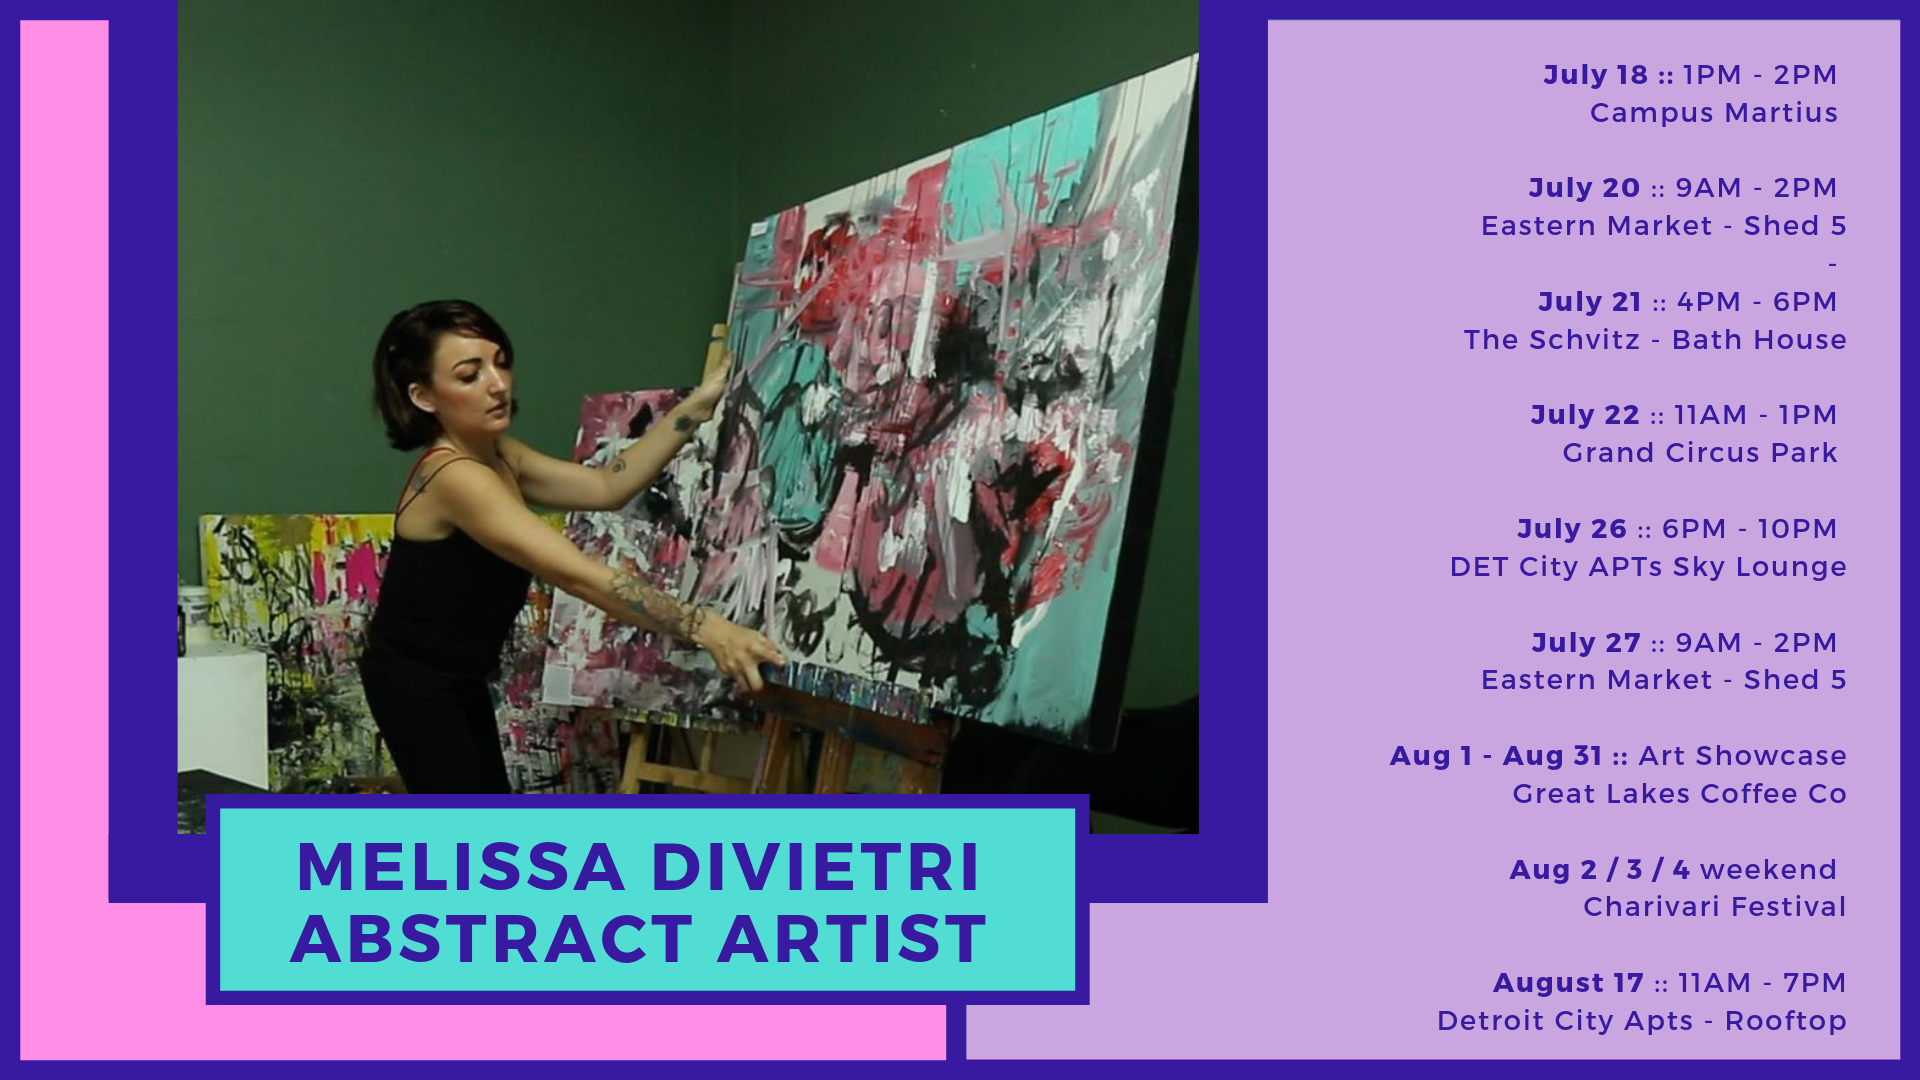 melissa divietri abstract artist (1)